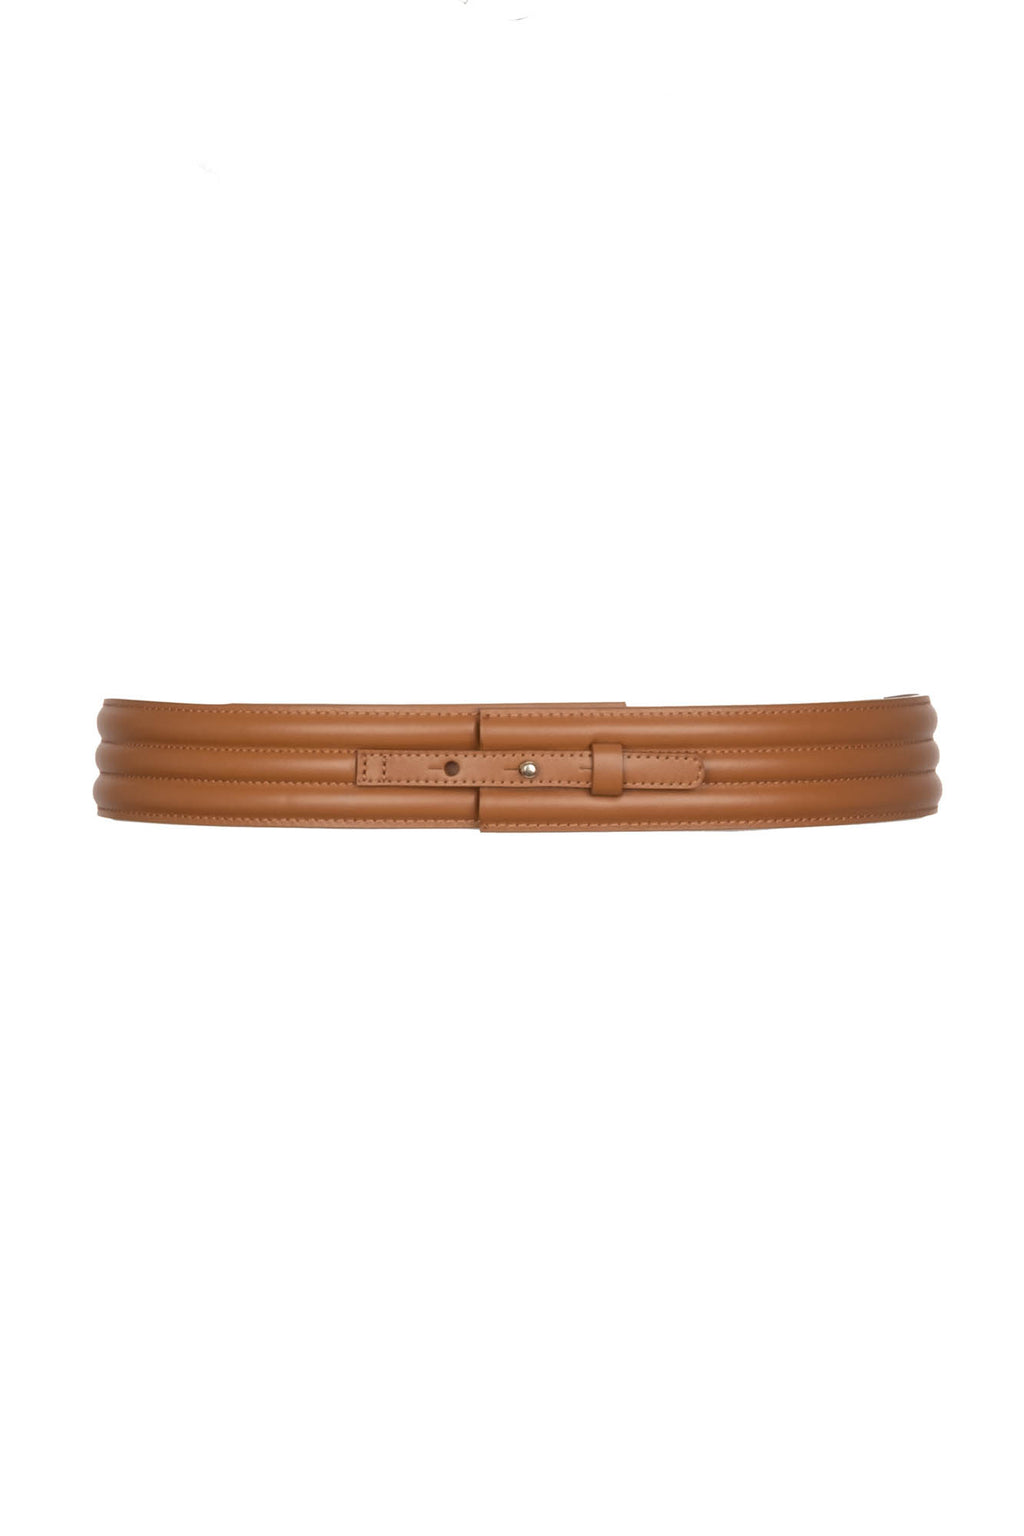 Banded Belt - Natural Leather